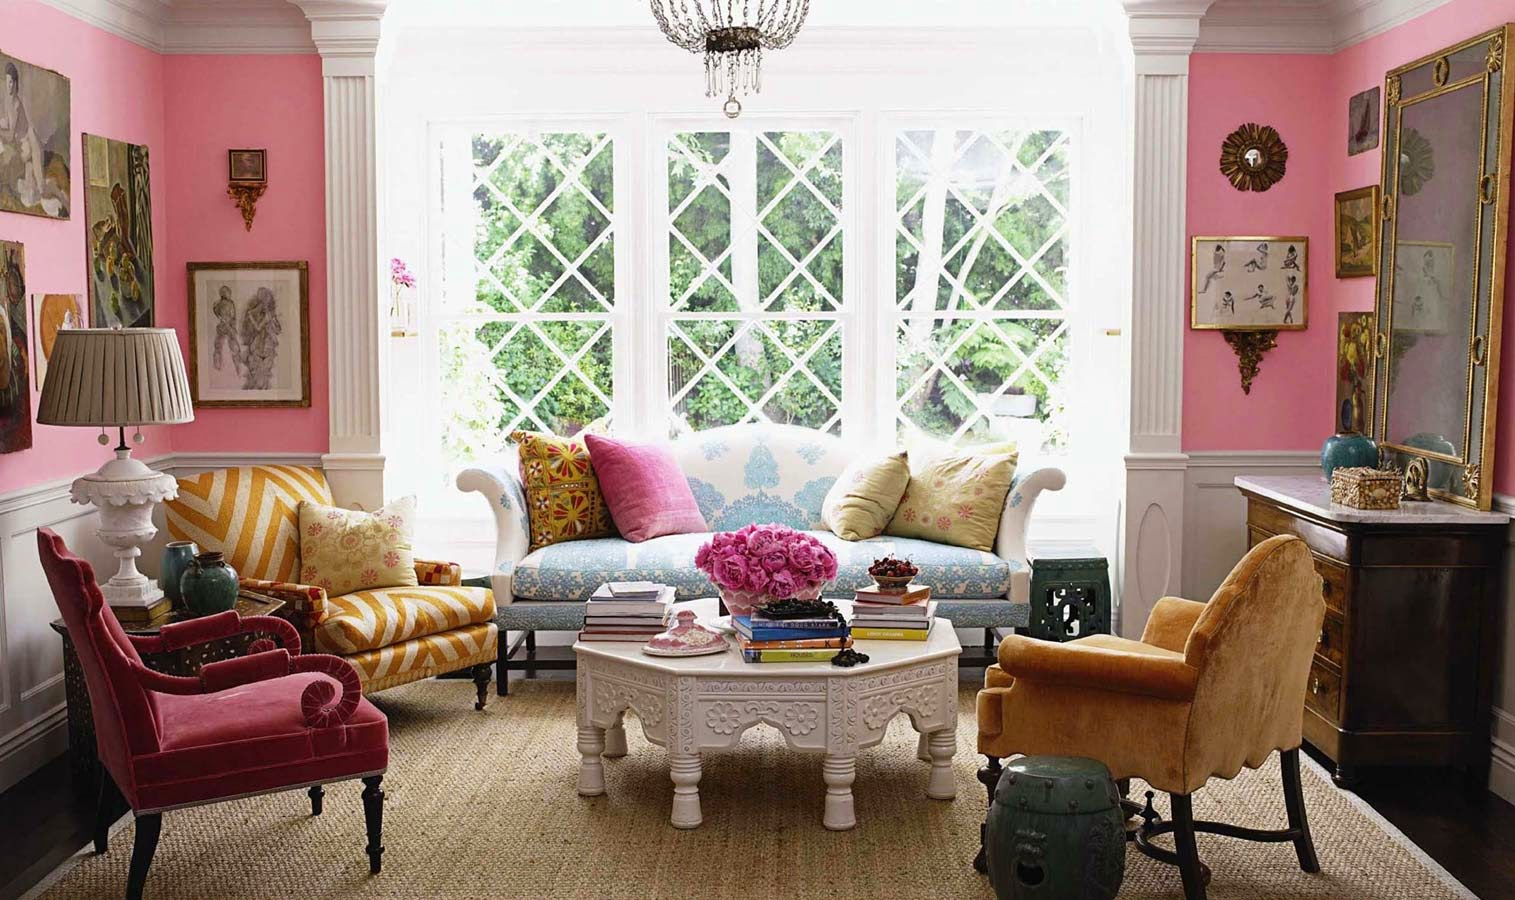 This preppy eclectic room is playful colorful and has the books associated with ivy league preppy it is classic yet incorporates mid century touches